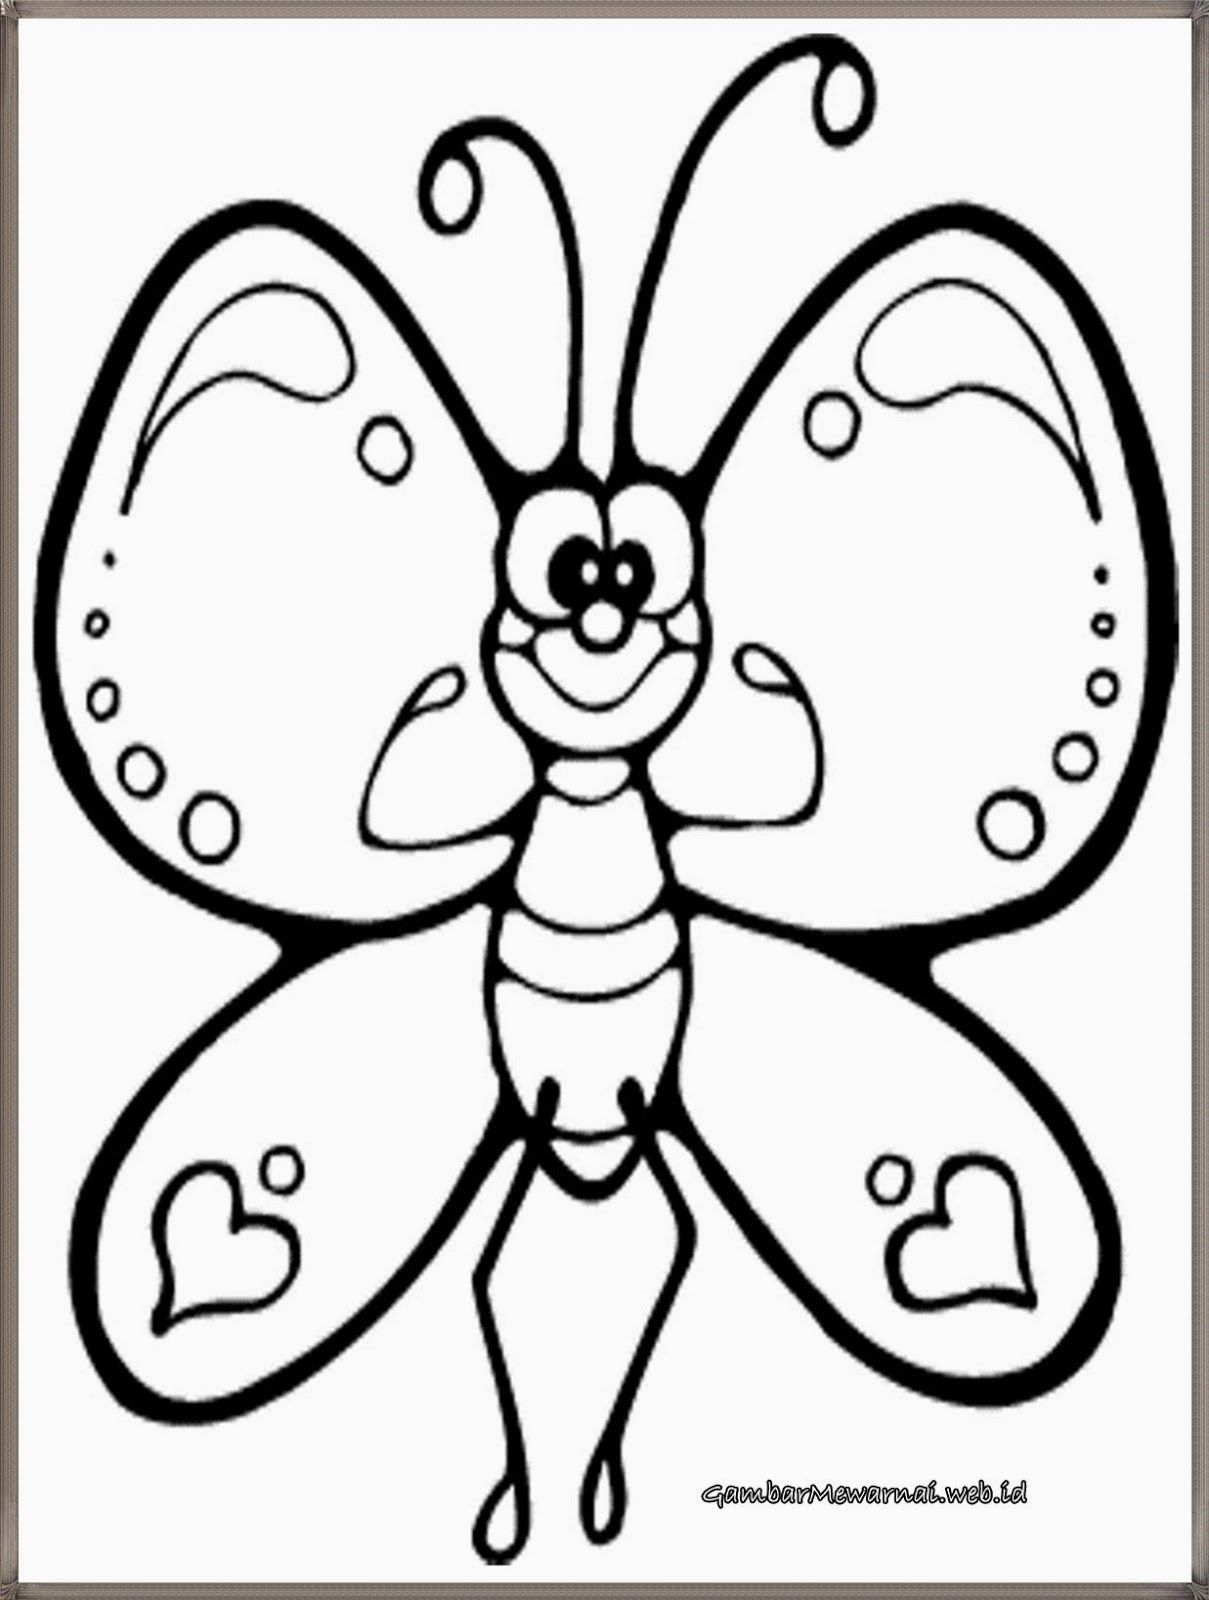 Butterfly Coloring Page Preschool And Kindergarten Butterfly